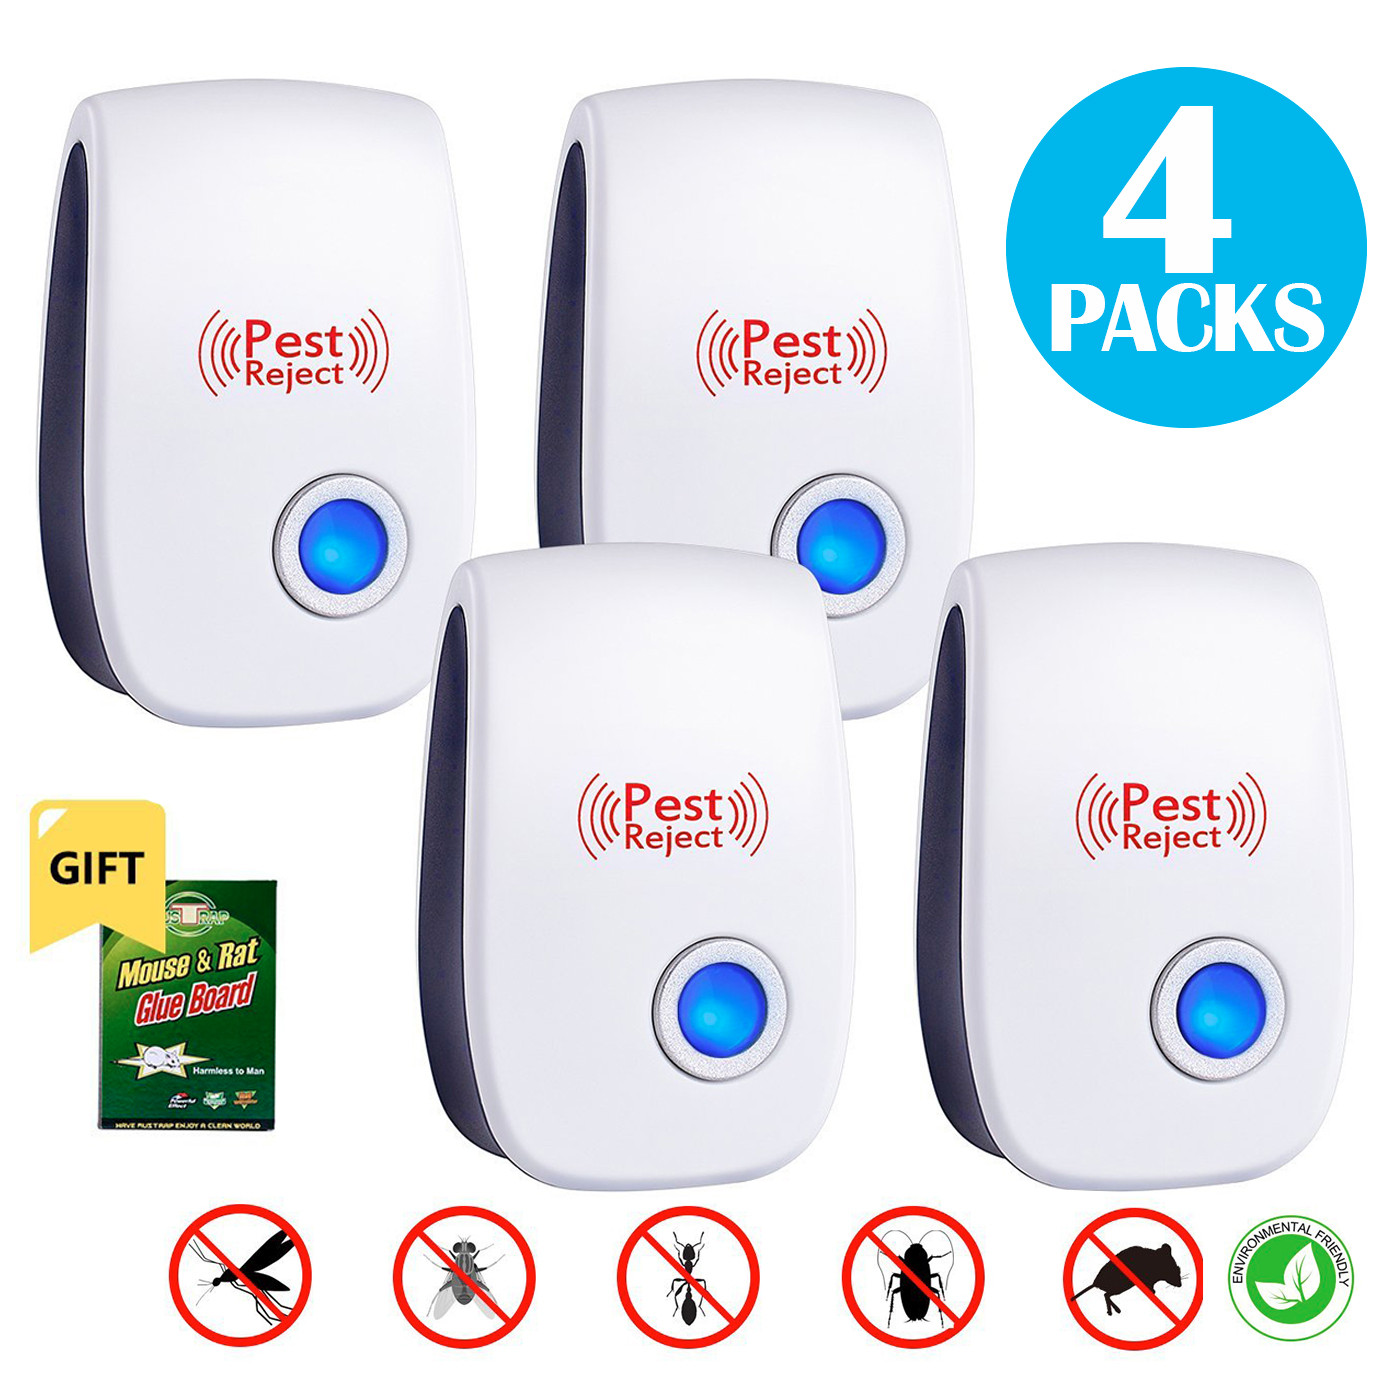 Oak Leaf Pest Control Ultrasonic Repeller, Set of 4 Electronic Plug In Repellent with Nightlight for Insects and Rodents, Mice, Mosquitoes, Spiders, Ants, Rats, Roaches, Bugs, Non-toxic,Black Friday